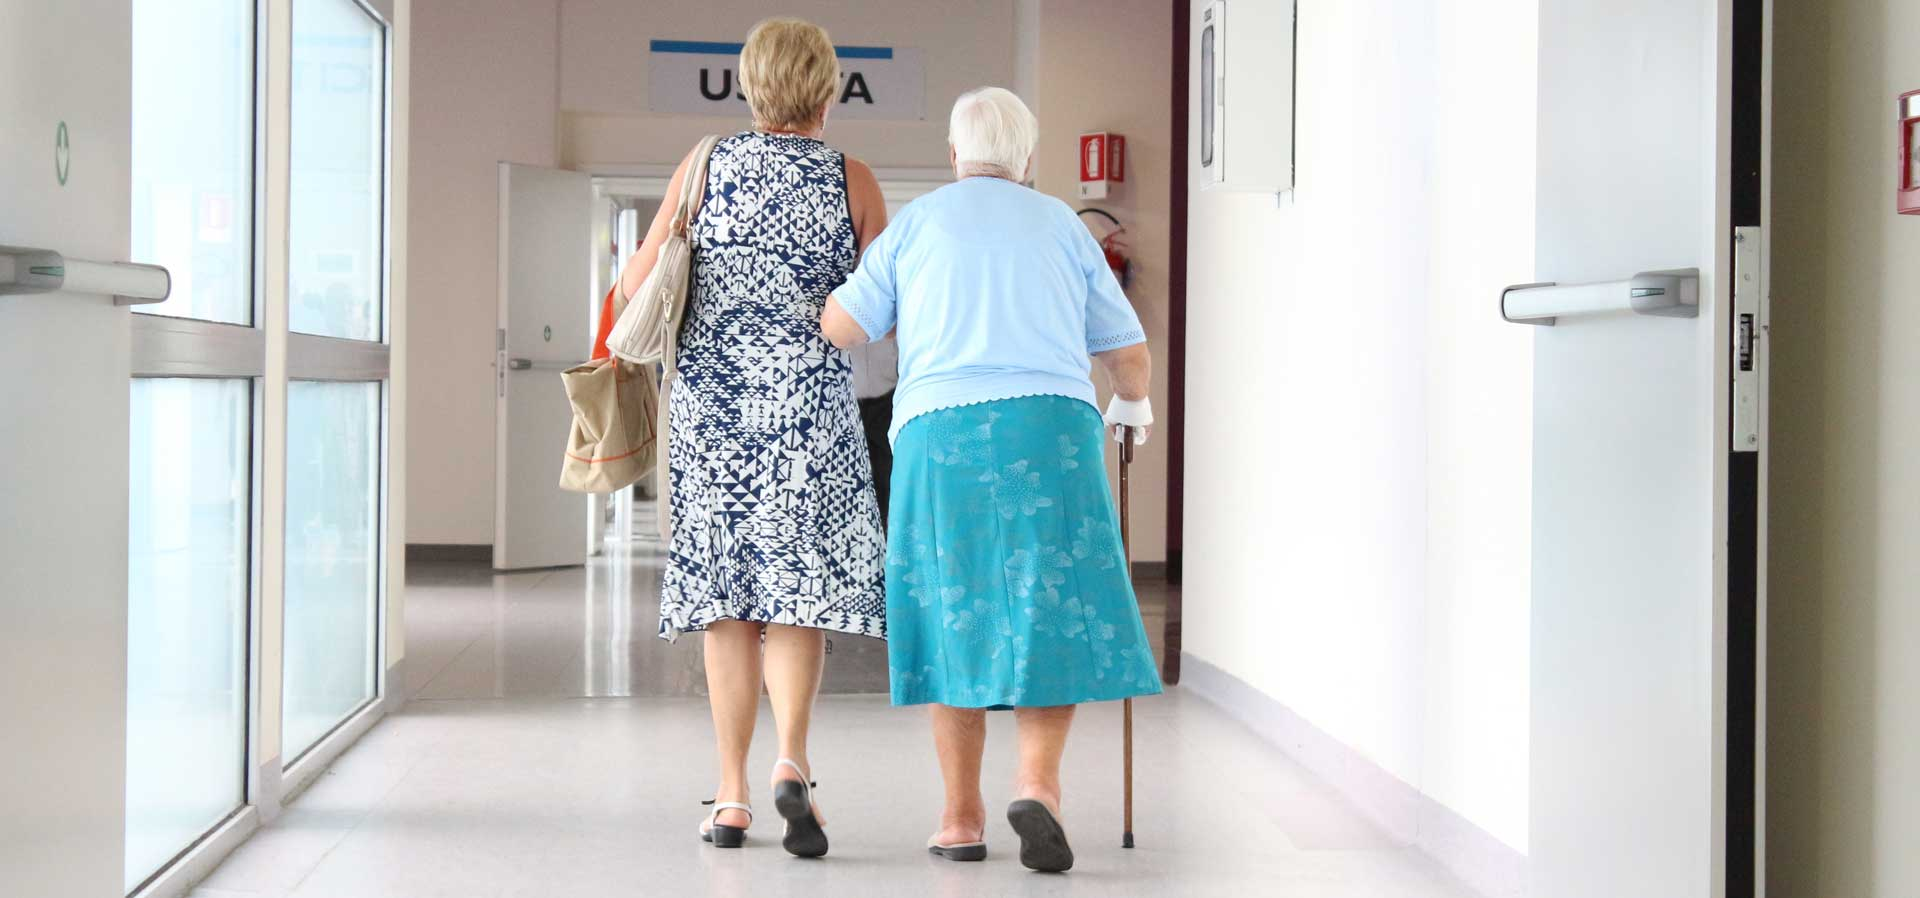 Aged-Care-Facility-Helps-Eliminate-Illness-with-the-Airius-PureAir